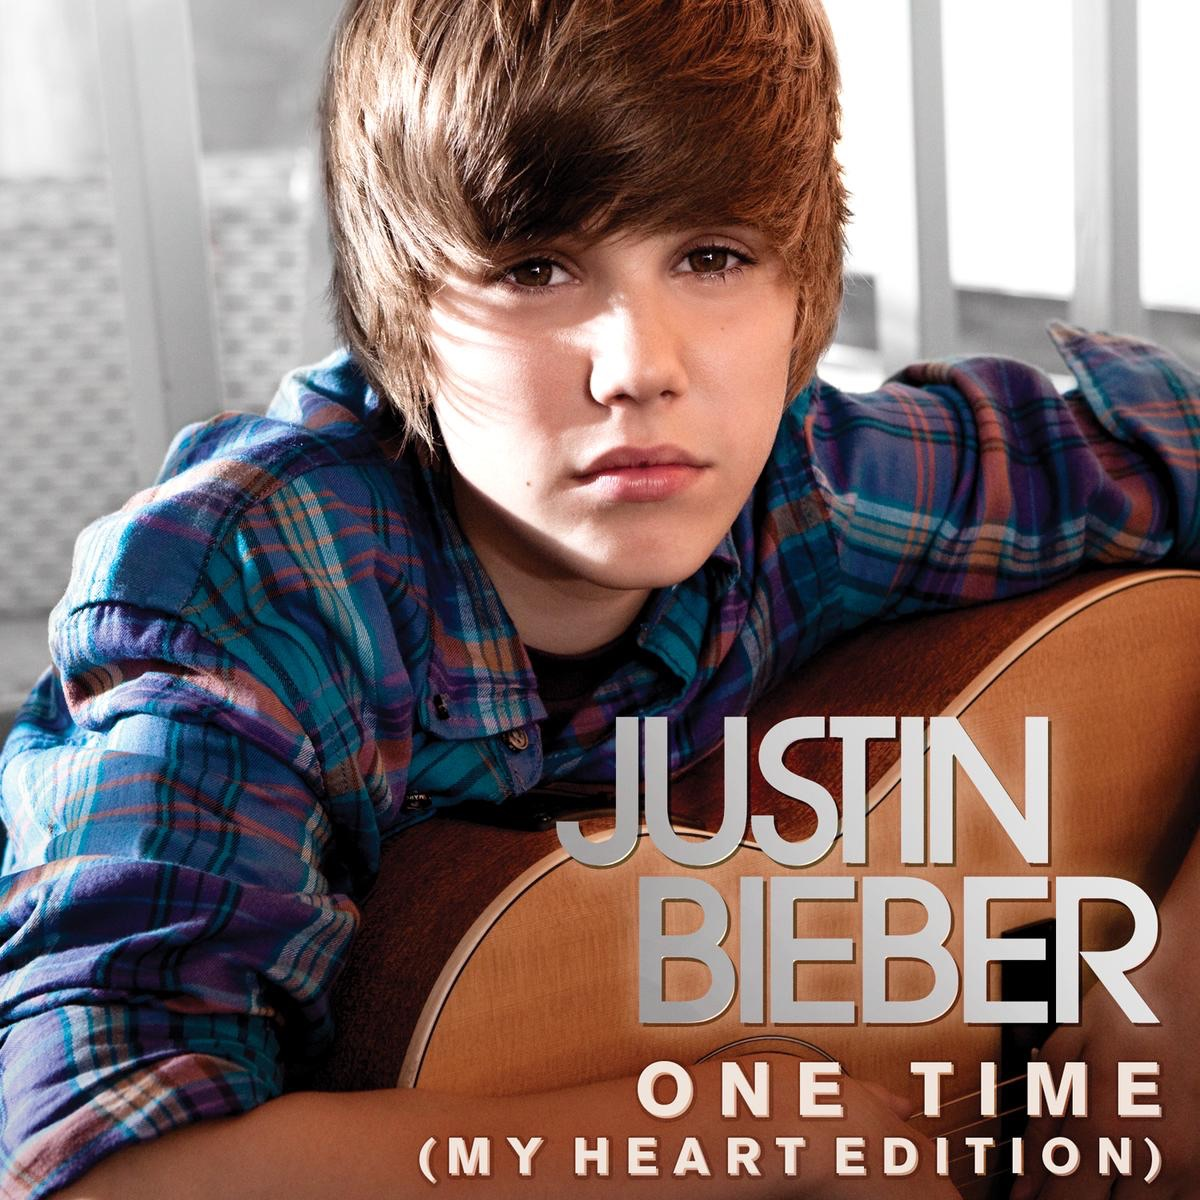 Justin Bieber - One Time (My Heart Edition) - Single Cover